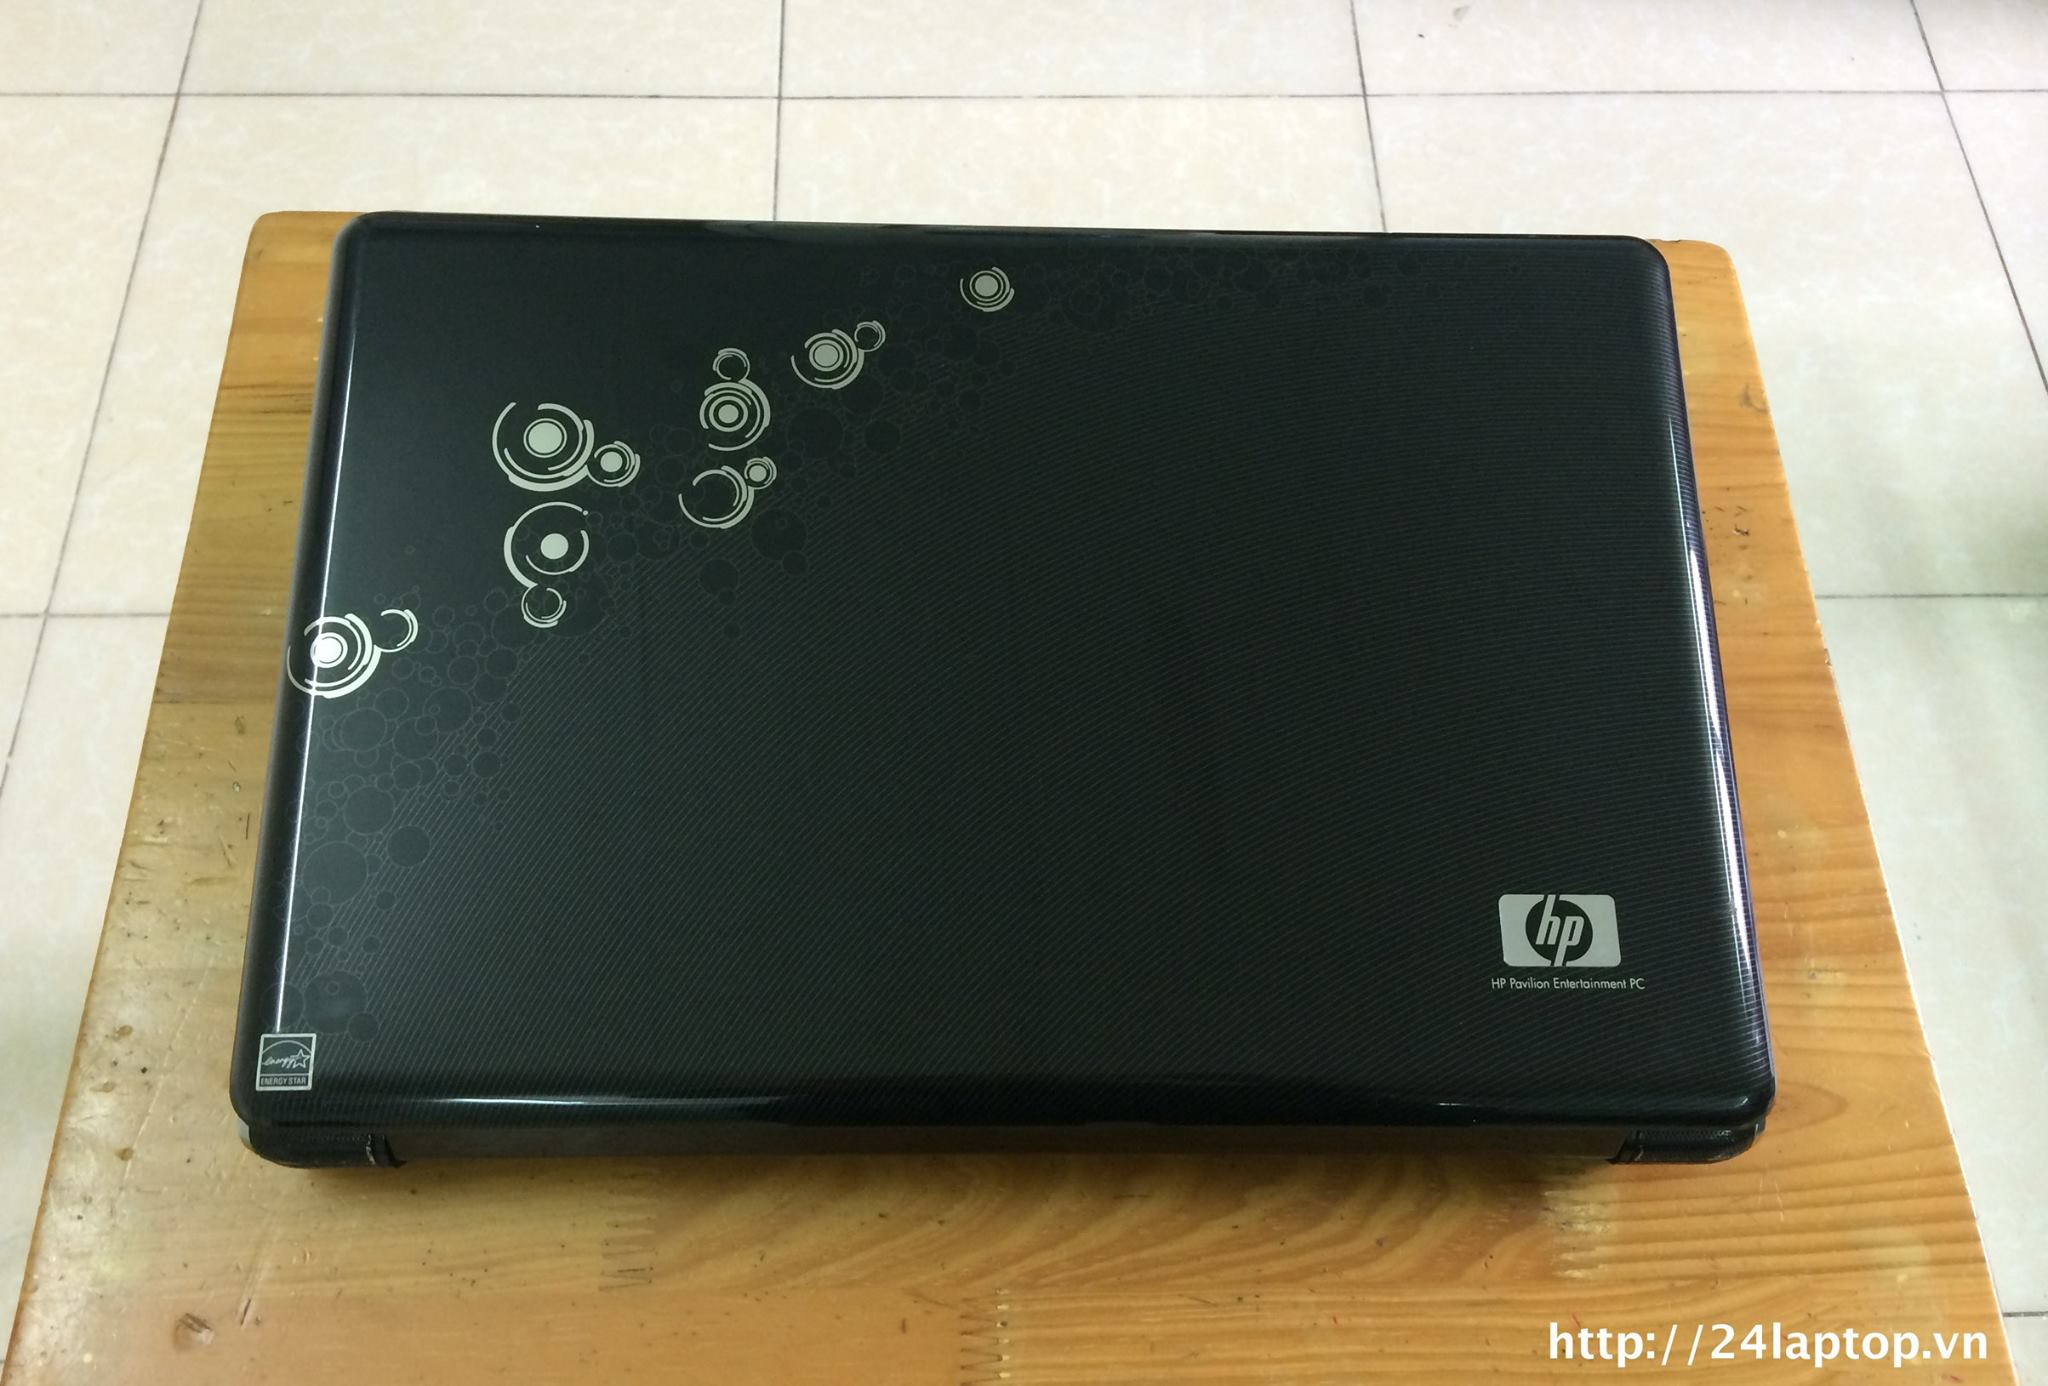 LAPTOP HP DV6 I7.jpg